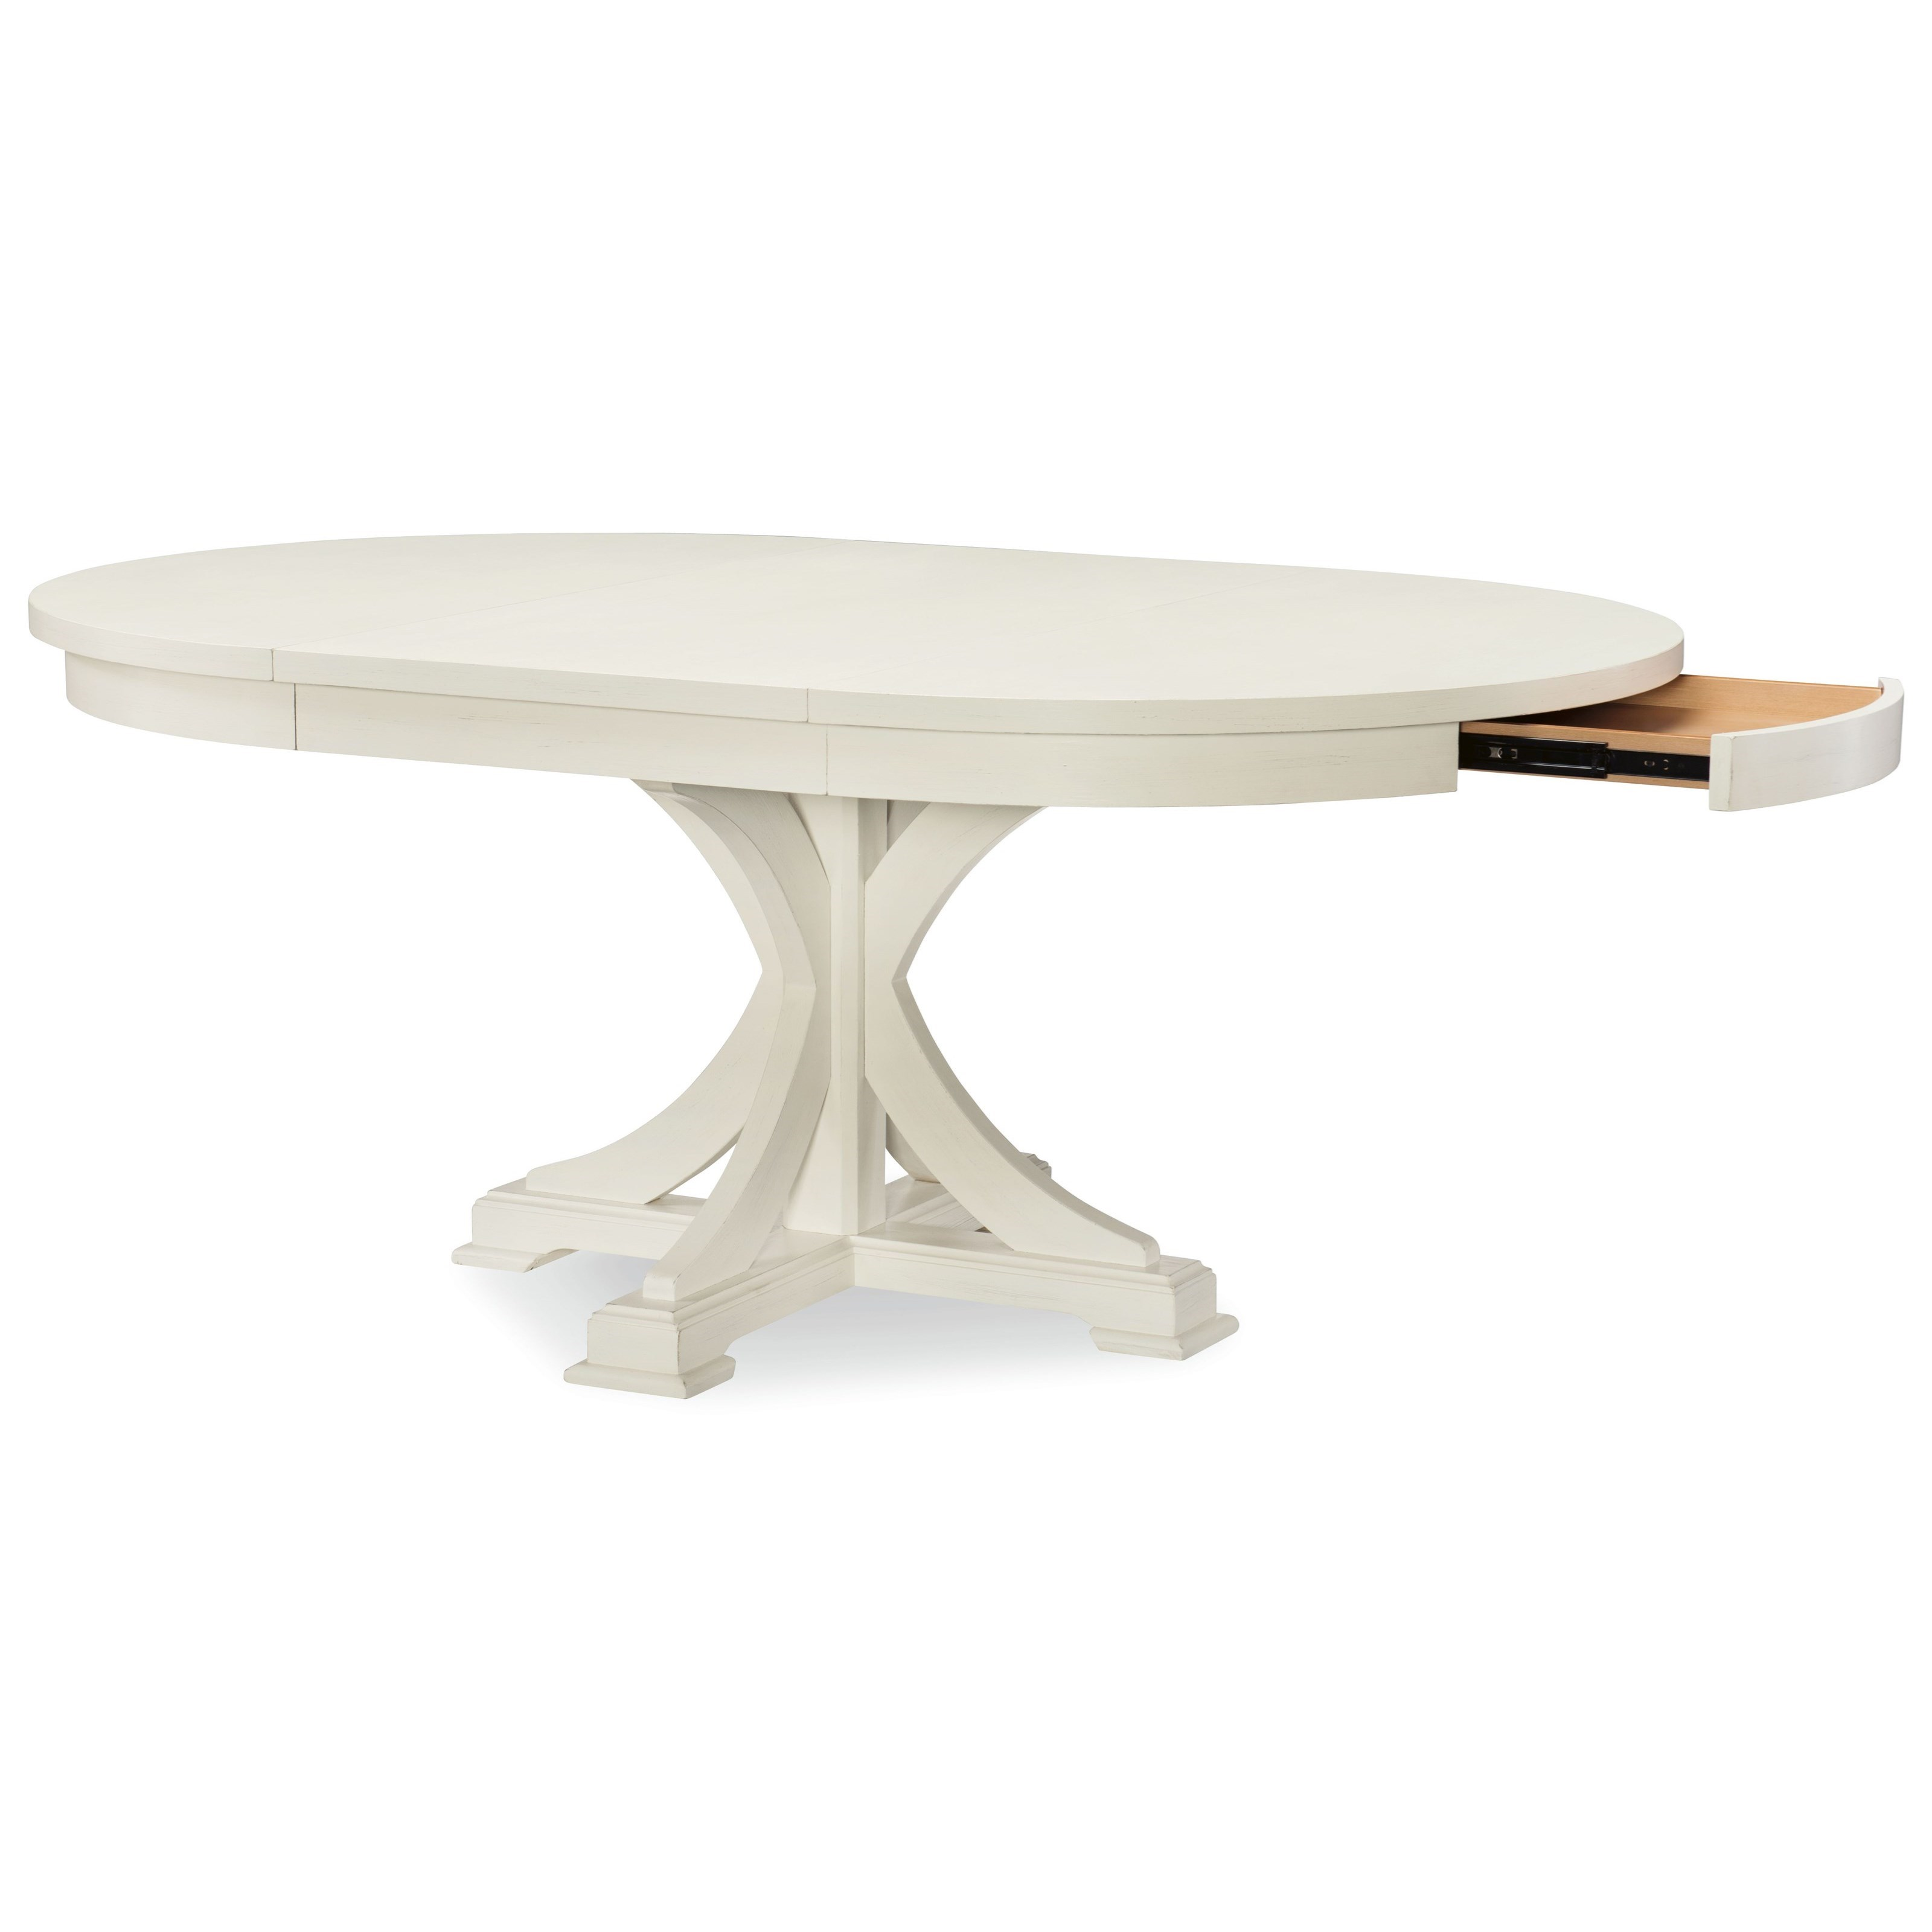 Rachael Ray Home by Legacy Classic Everyday Dining Round to Oval Pedestal Table - Item Number: 7004-521K